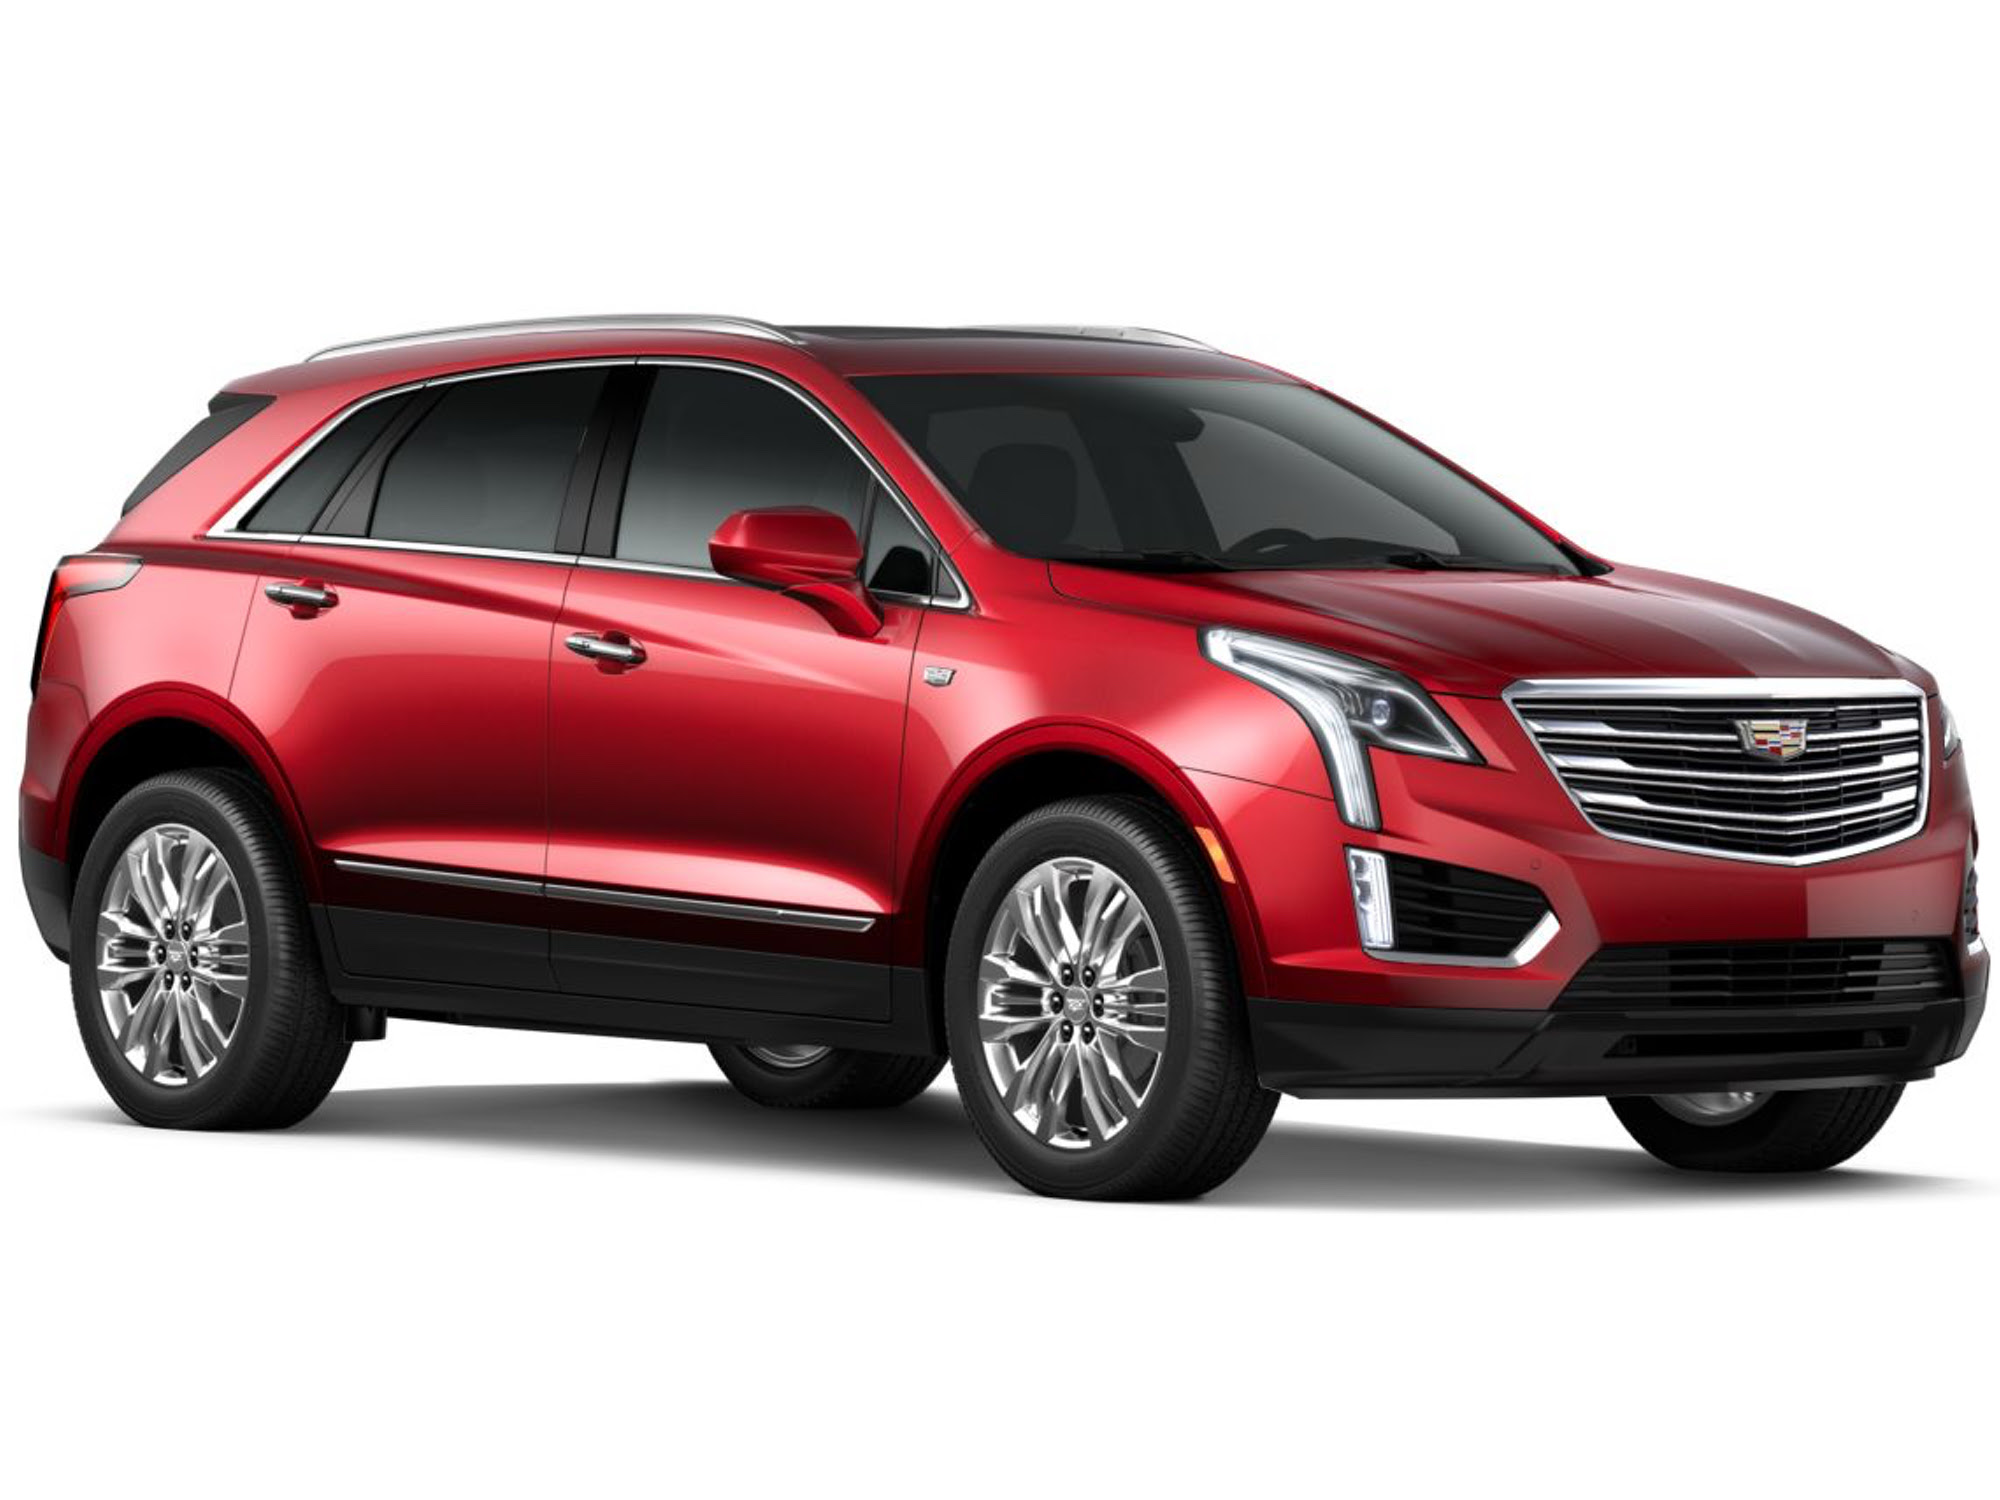 New Red Horizon Tintcoat Color For 2019 Cadillac XT5   GM ...